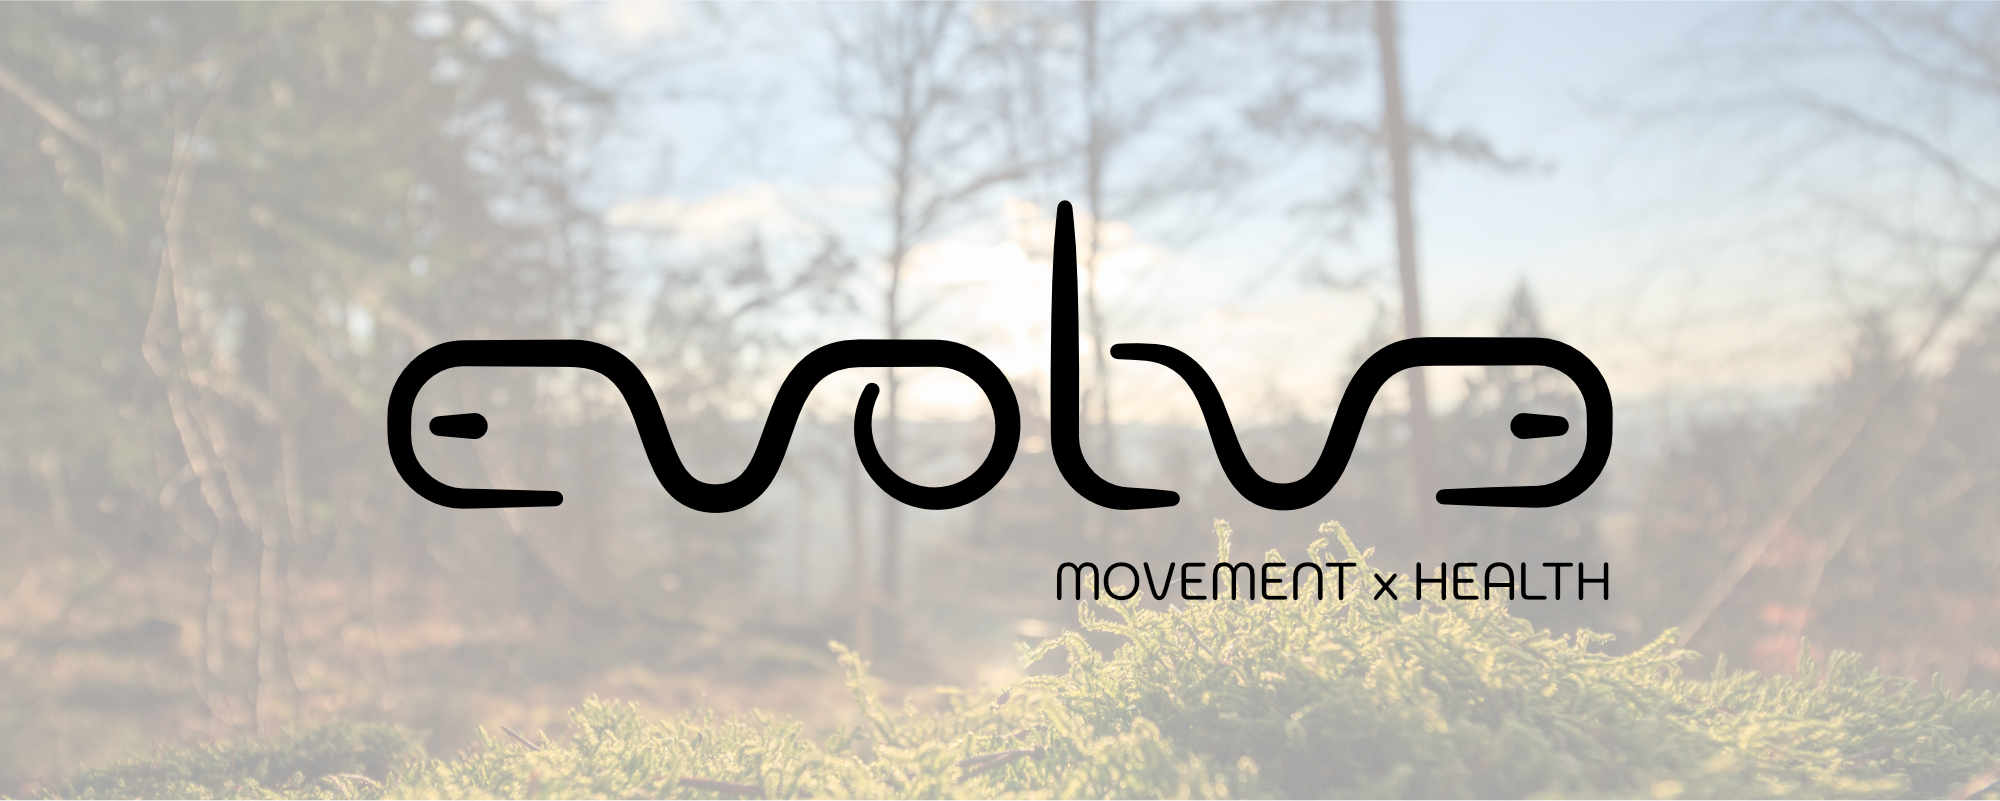 Evolve Movement and Health